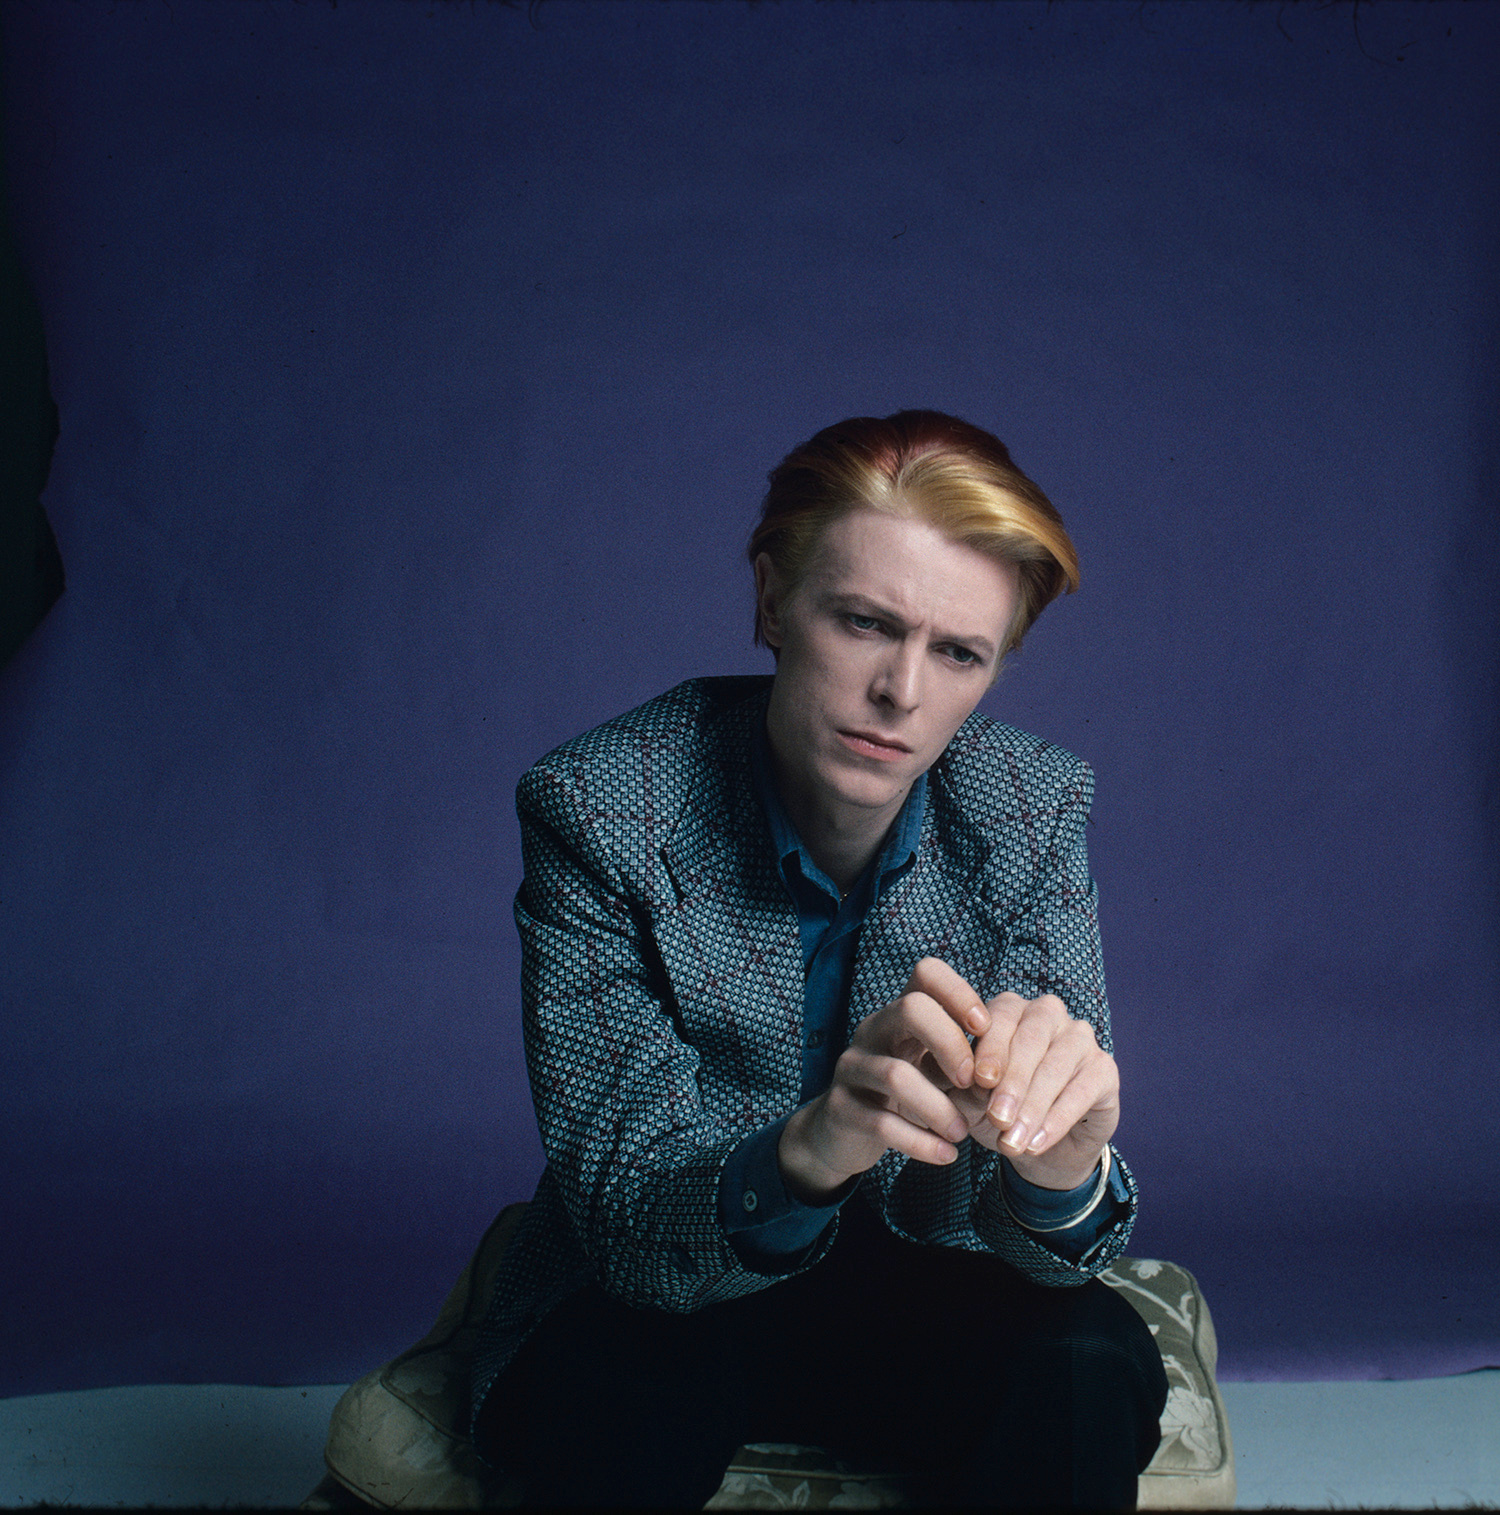 Bowie: Portraits of and Behind the Icon